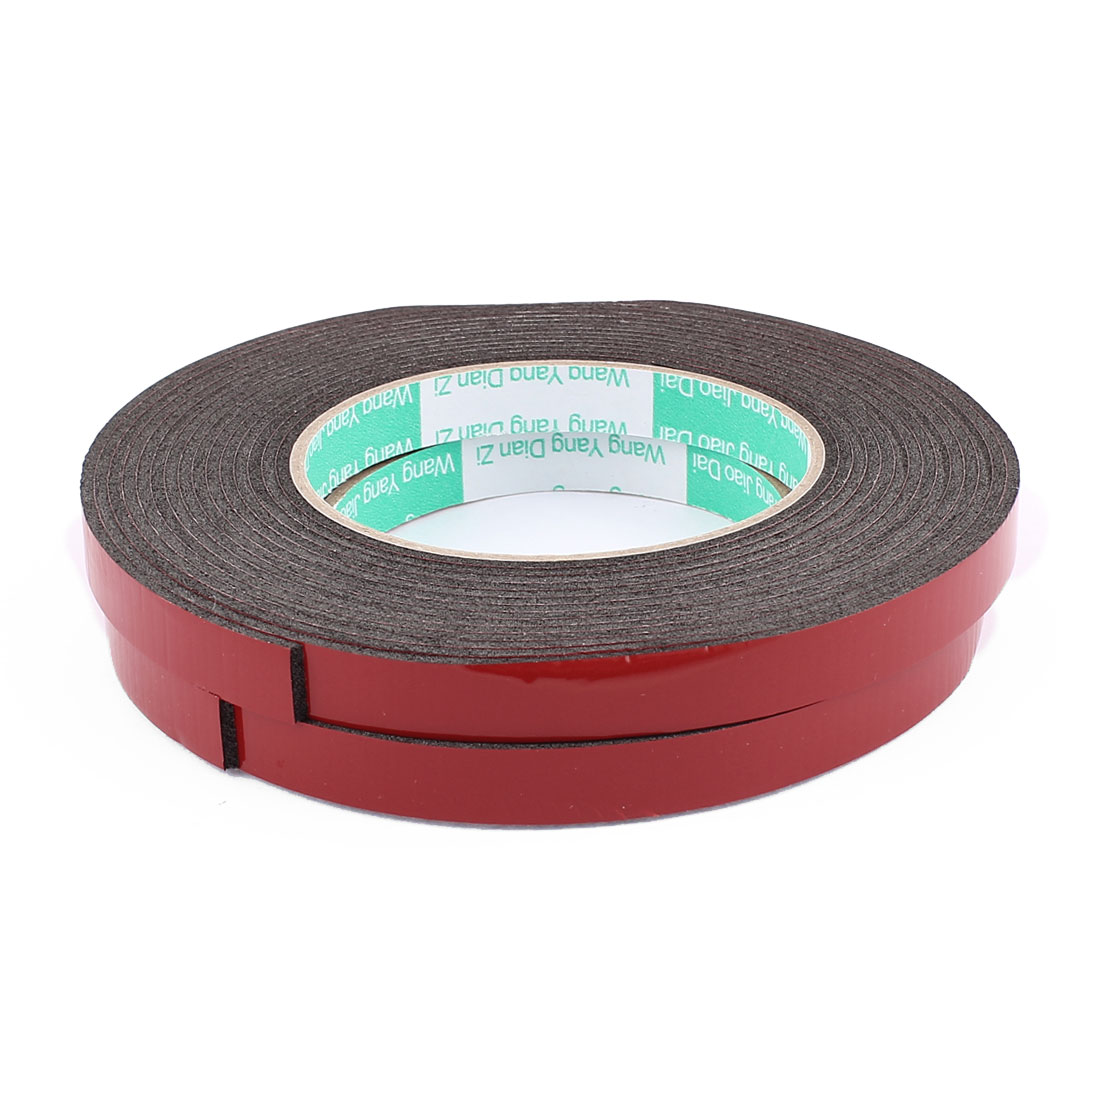 2 Pcs Black Strong Double Sided Adhesive Tape Sponge Tape 12MM Width 5M Long